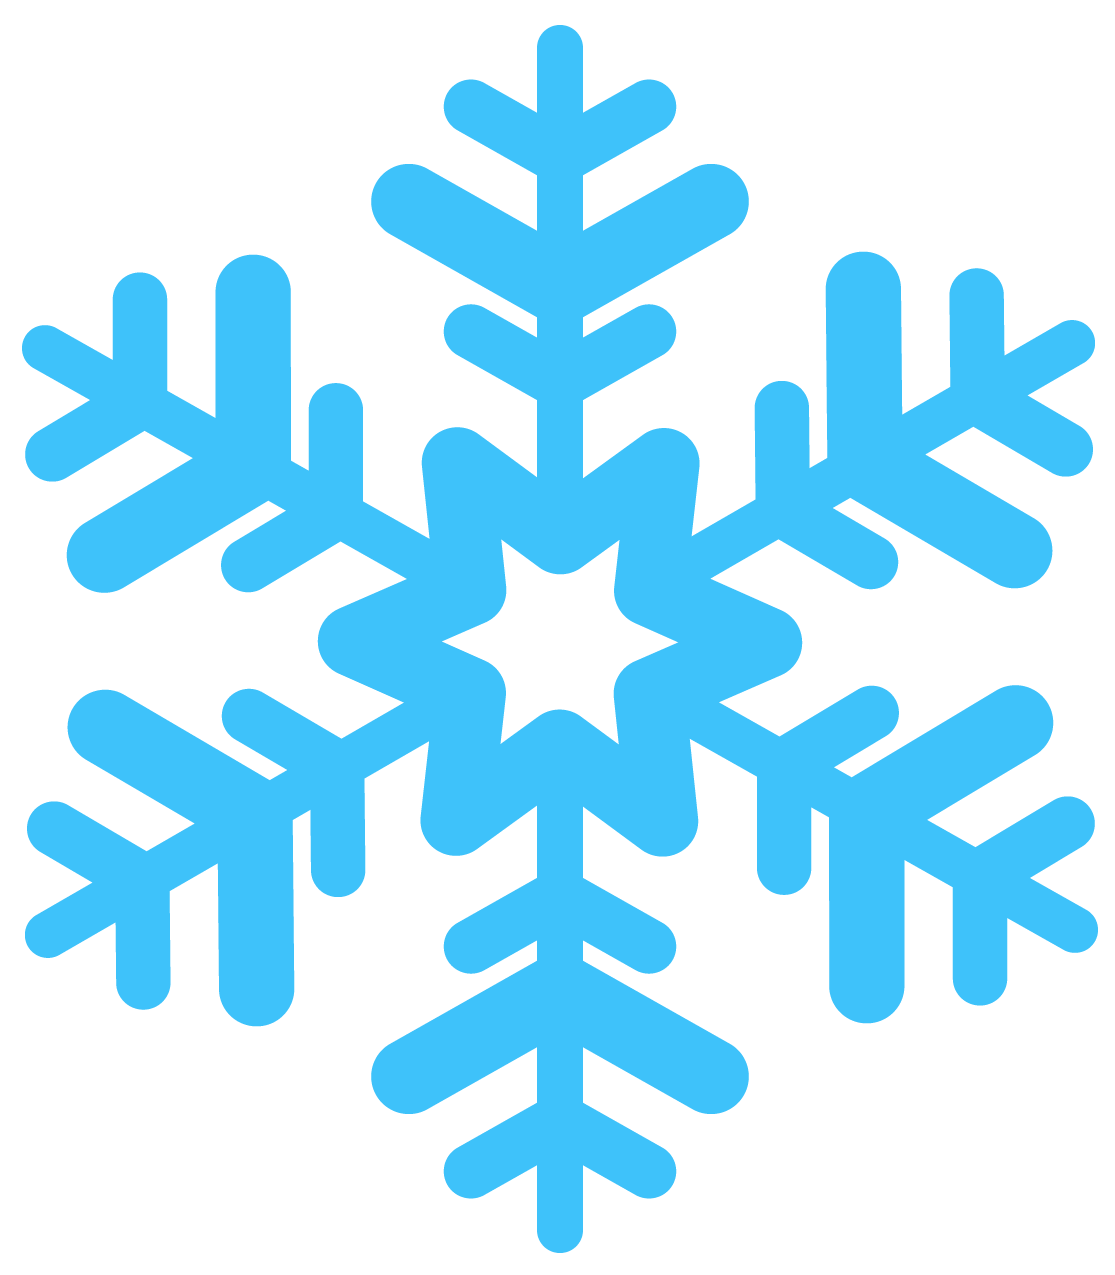 Blue Snowflakes PNG Image with Transparent Background ...   Blue Snowflakes Png